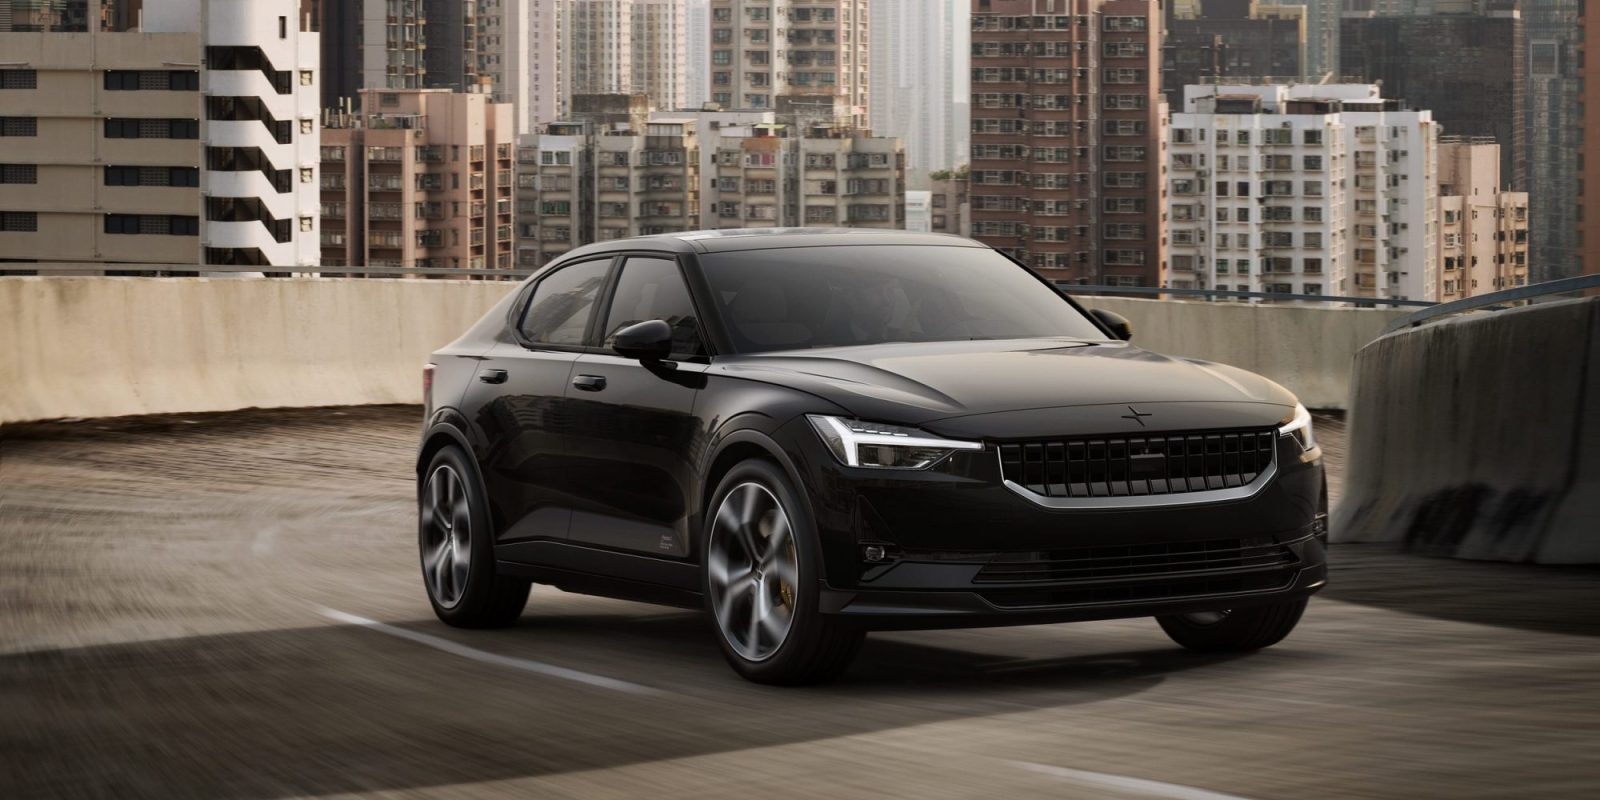 Polestar 2 price finalized in Europe: €59k, competitive with Tesla Model 3